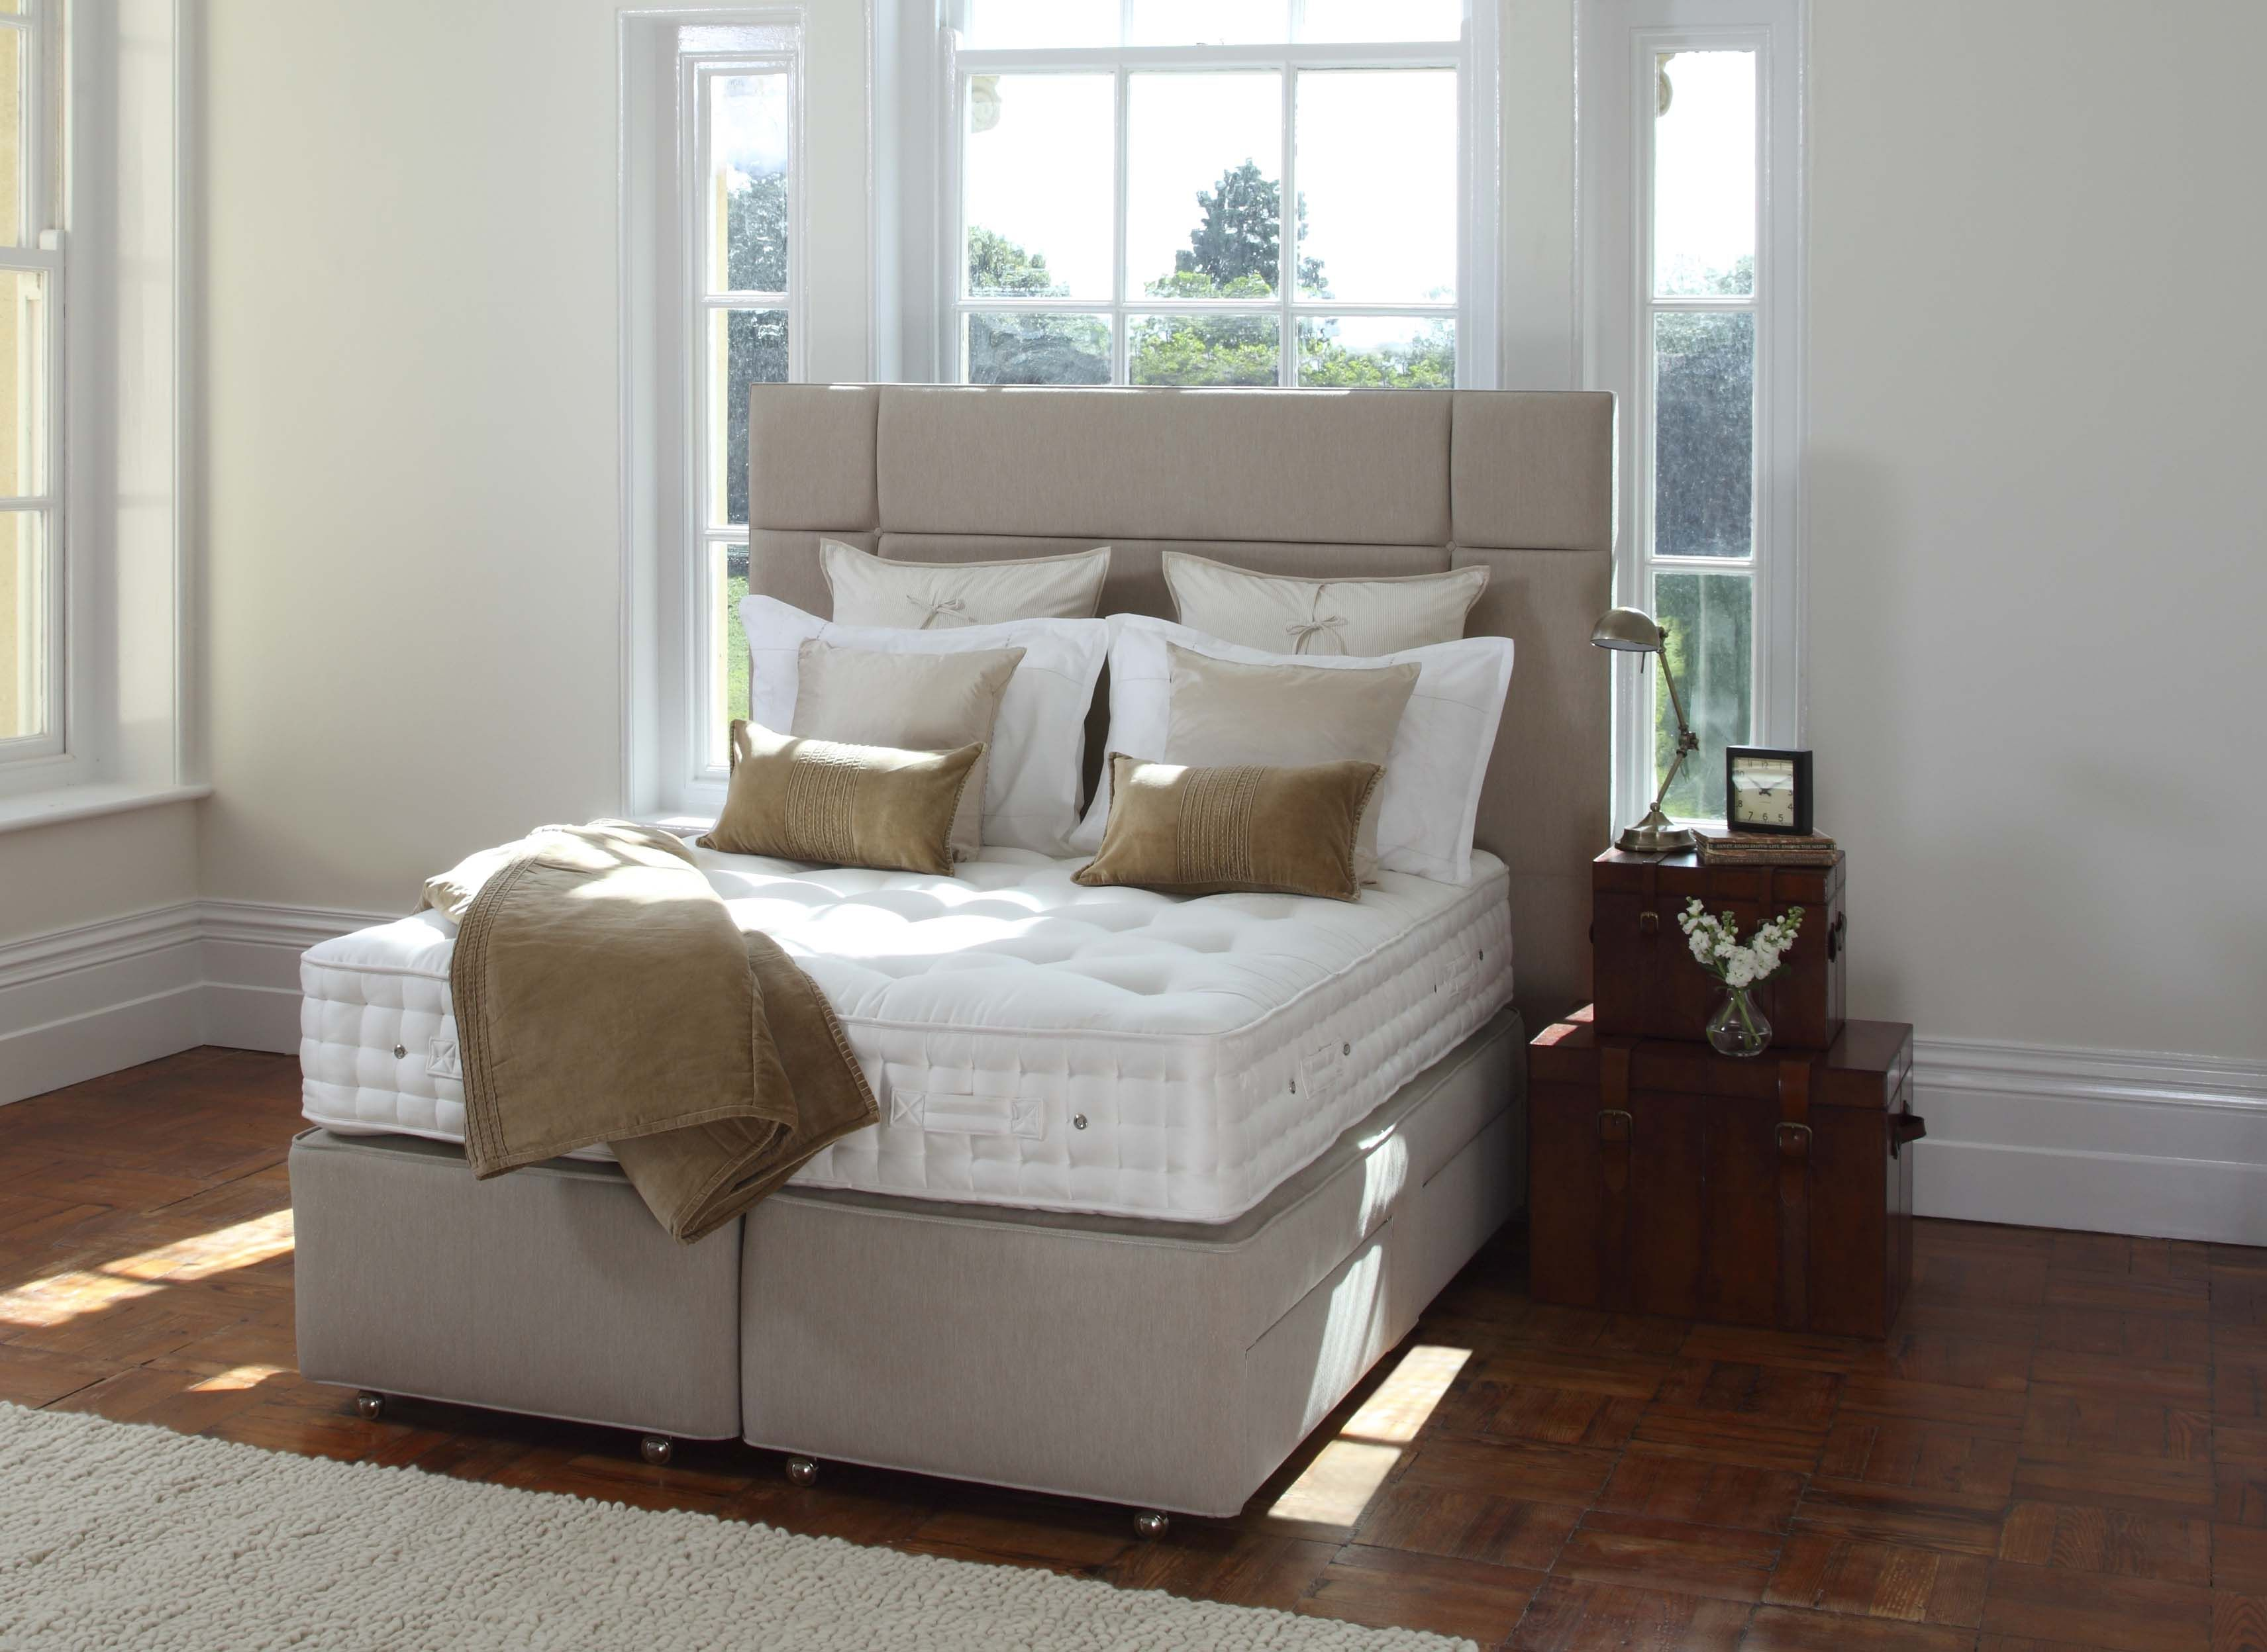 Introducing The Relyon Royal Heritage Hampton (undressed). This Sumptuous  Bed Can Be VIP